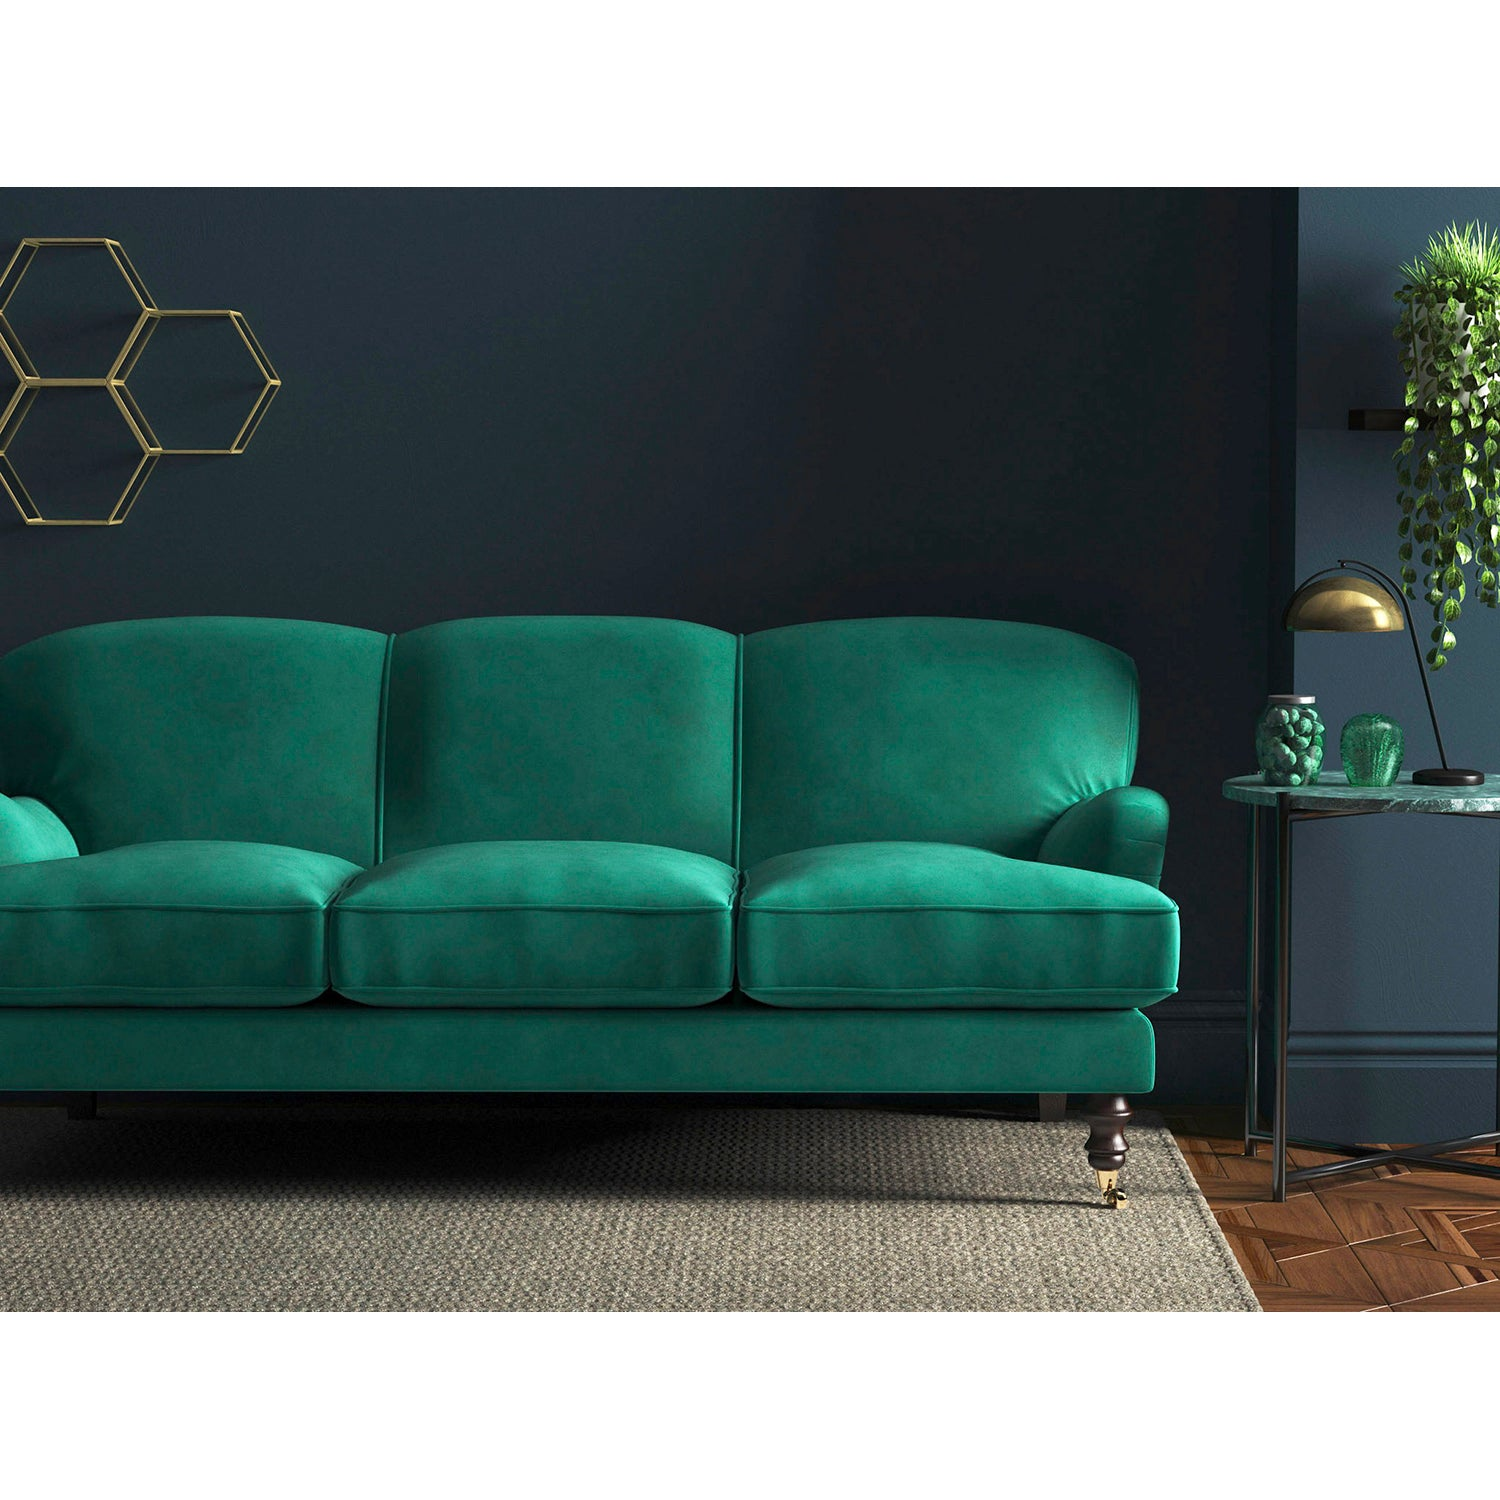 Turquoise velvet sofa with a stain resistant finish